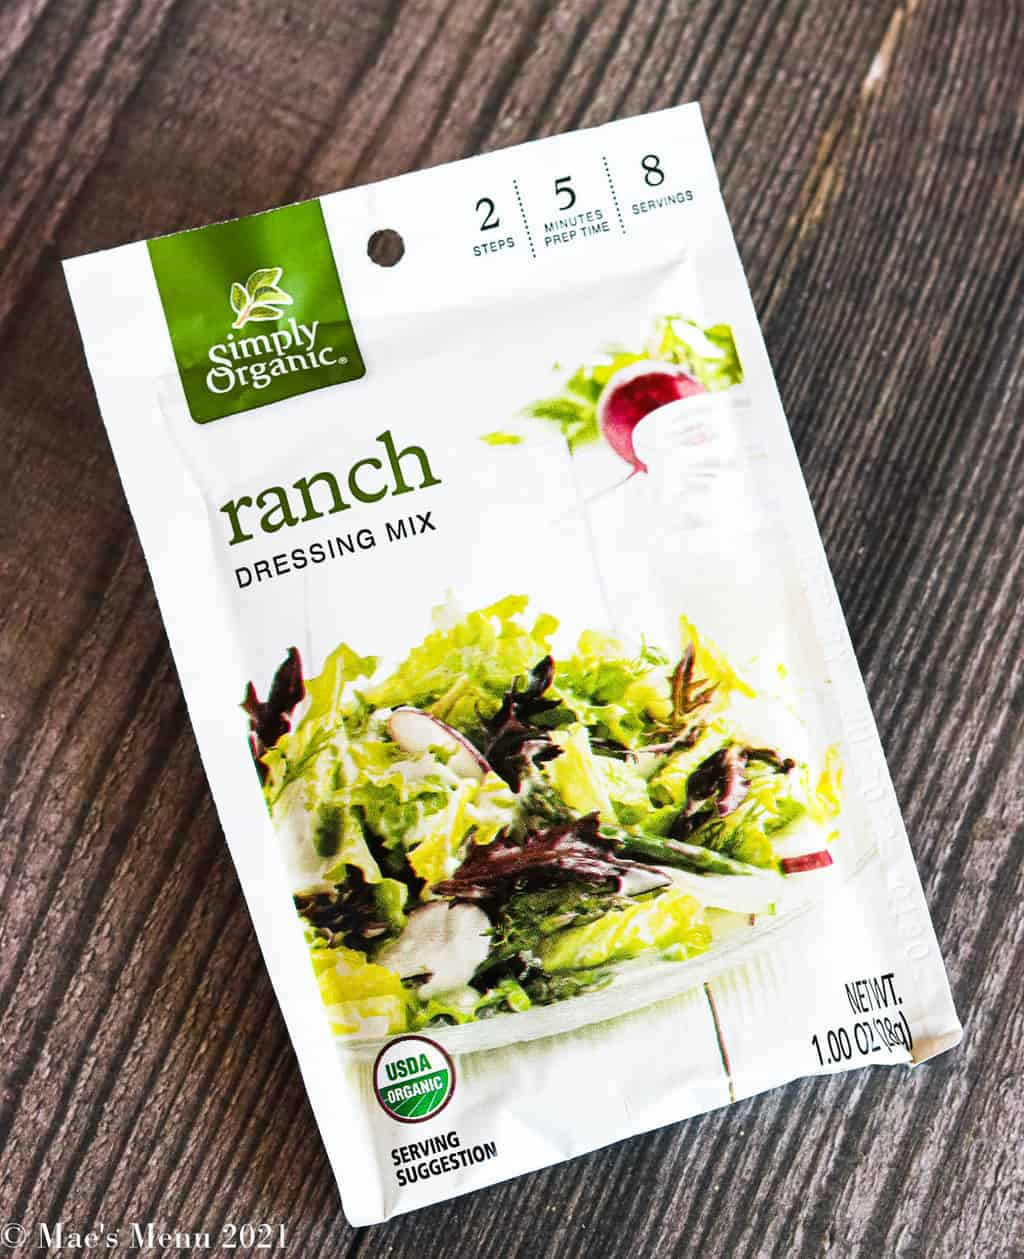 An up-close shot of a packet of ranch dressing mix